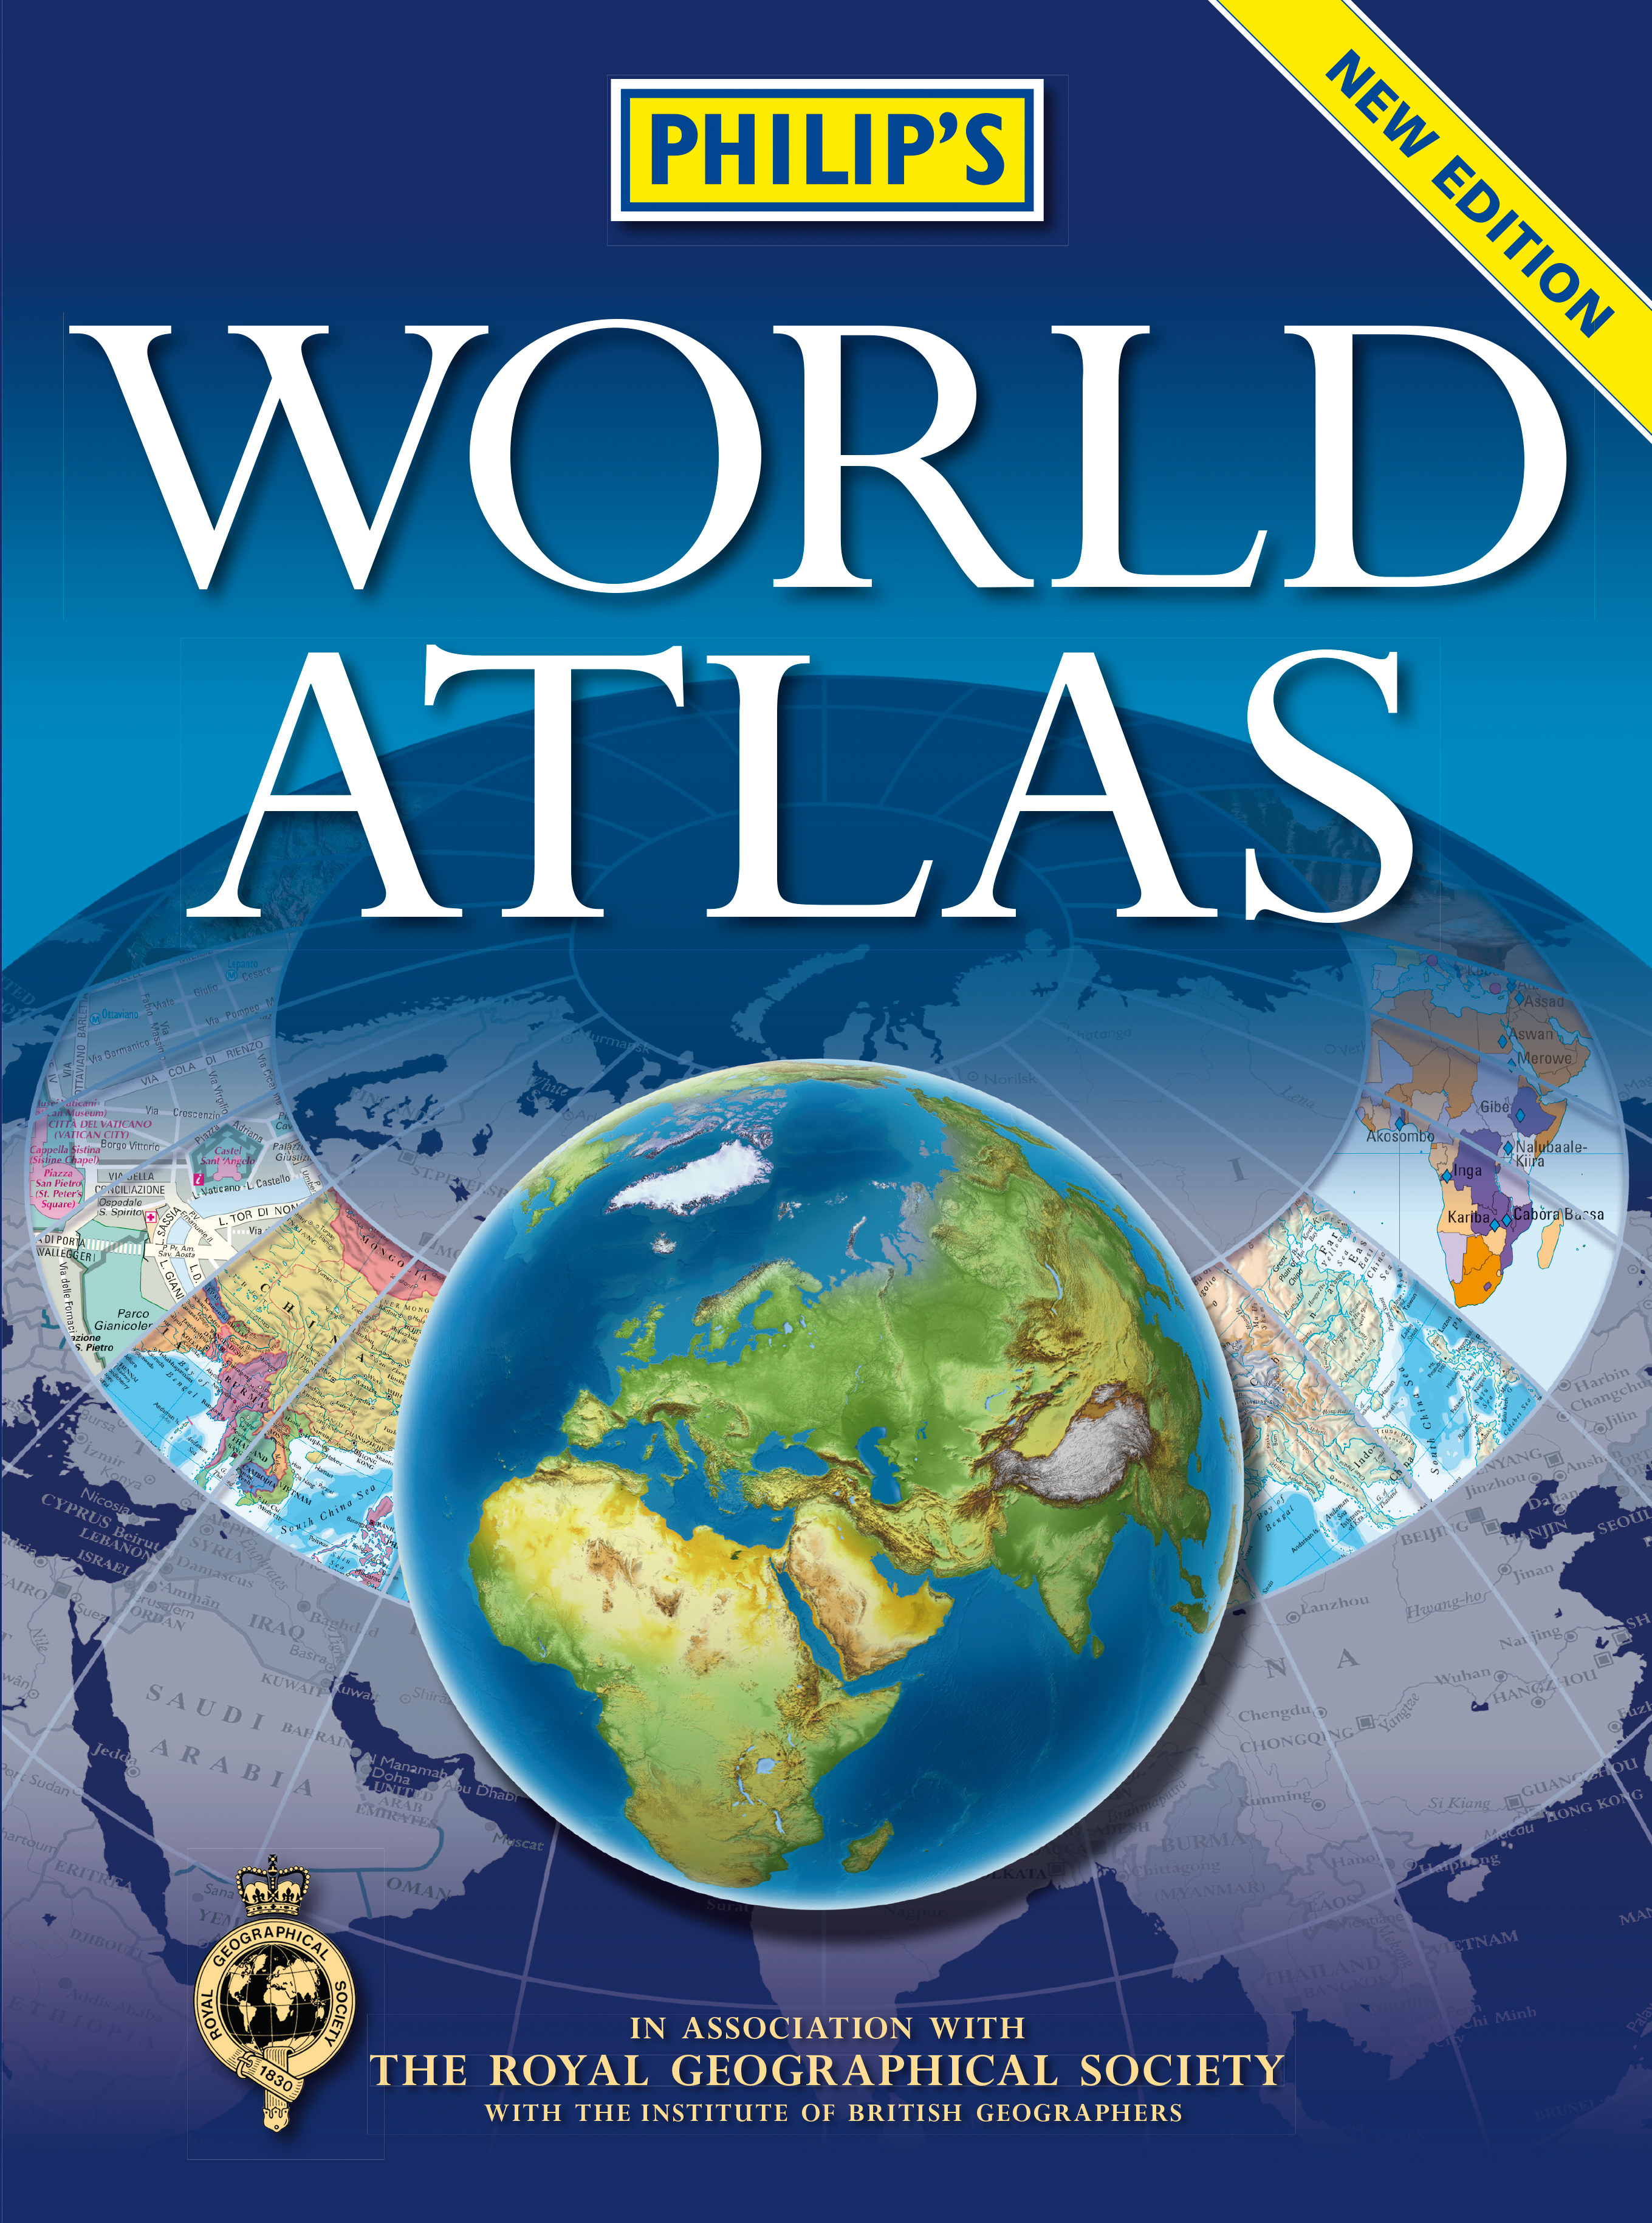 Philips world atlas paperback by philips maps books hachette philips world atlas paperback by philips maps books hachette australia gumiabroncs Image collections